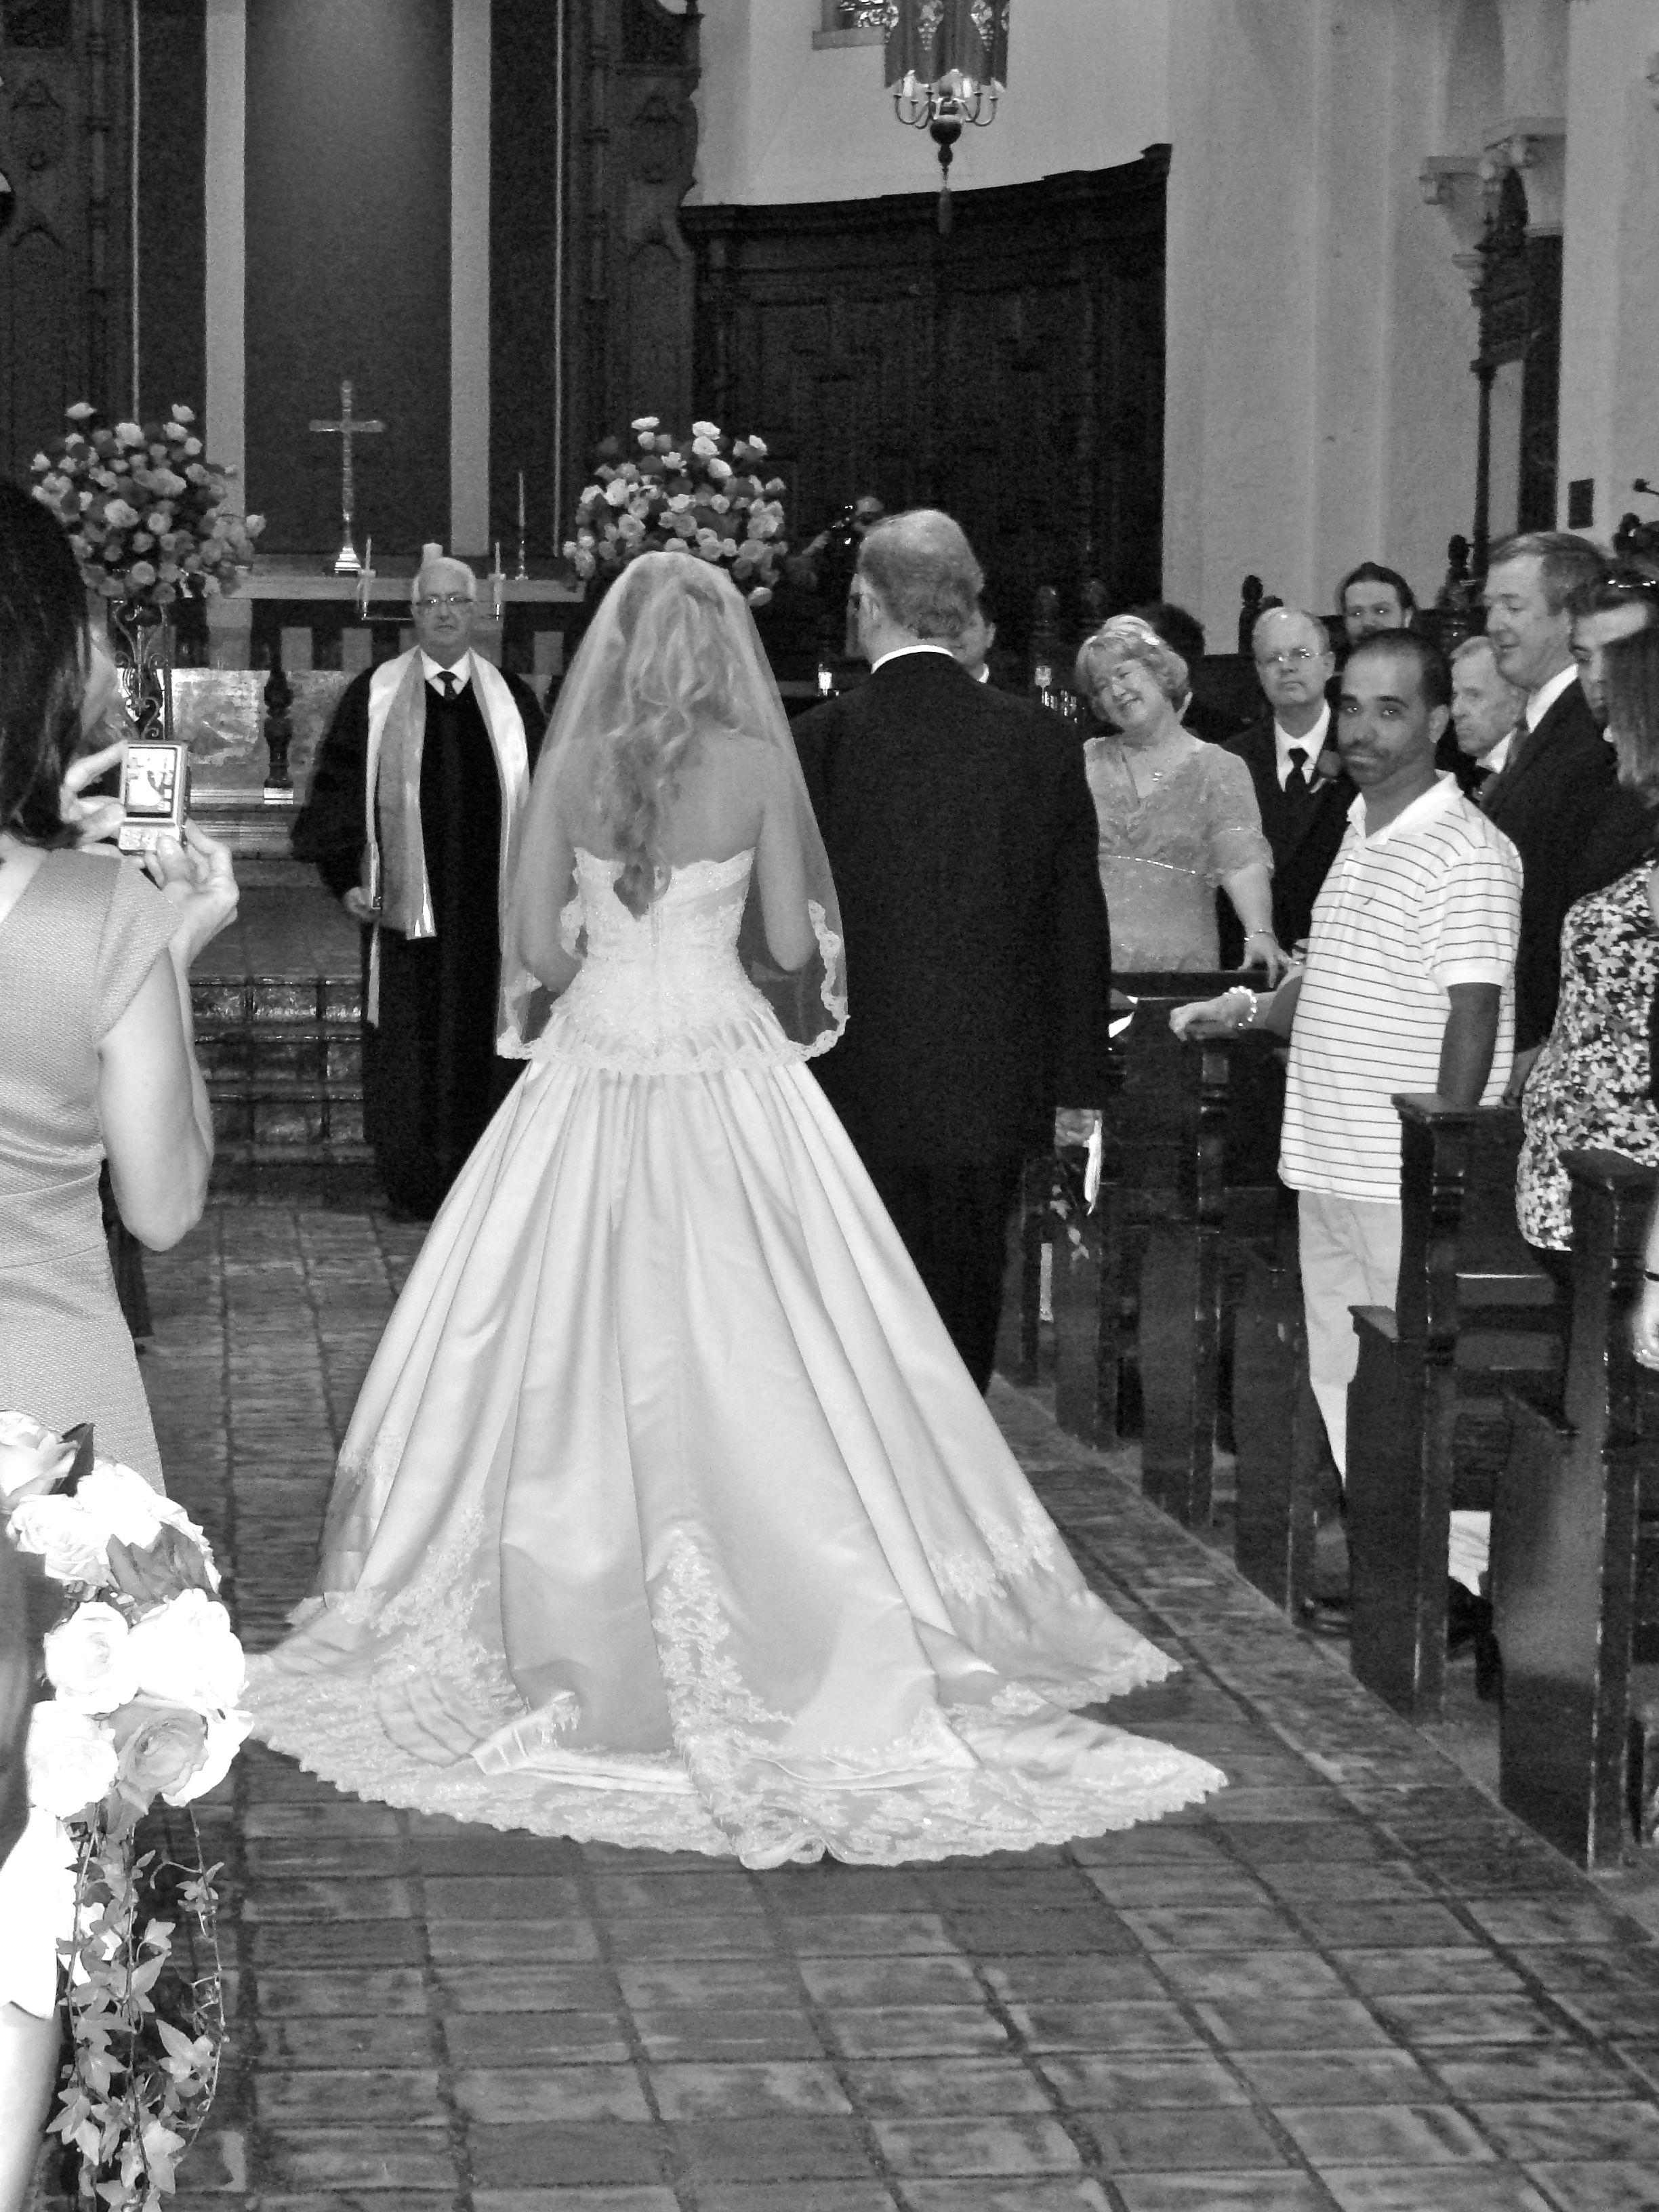 A beautiful wedding at Rollins College's Knowles Chapel!